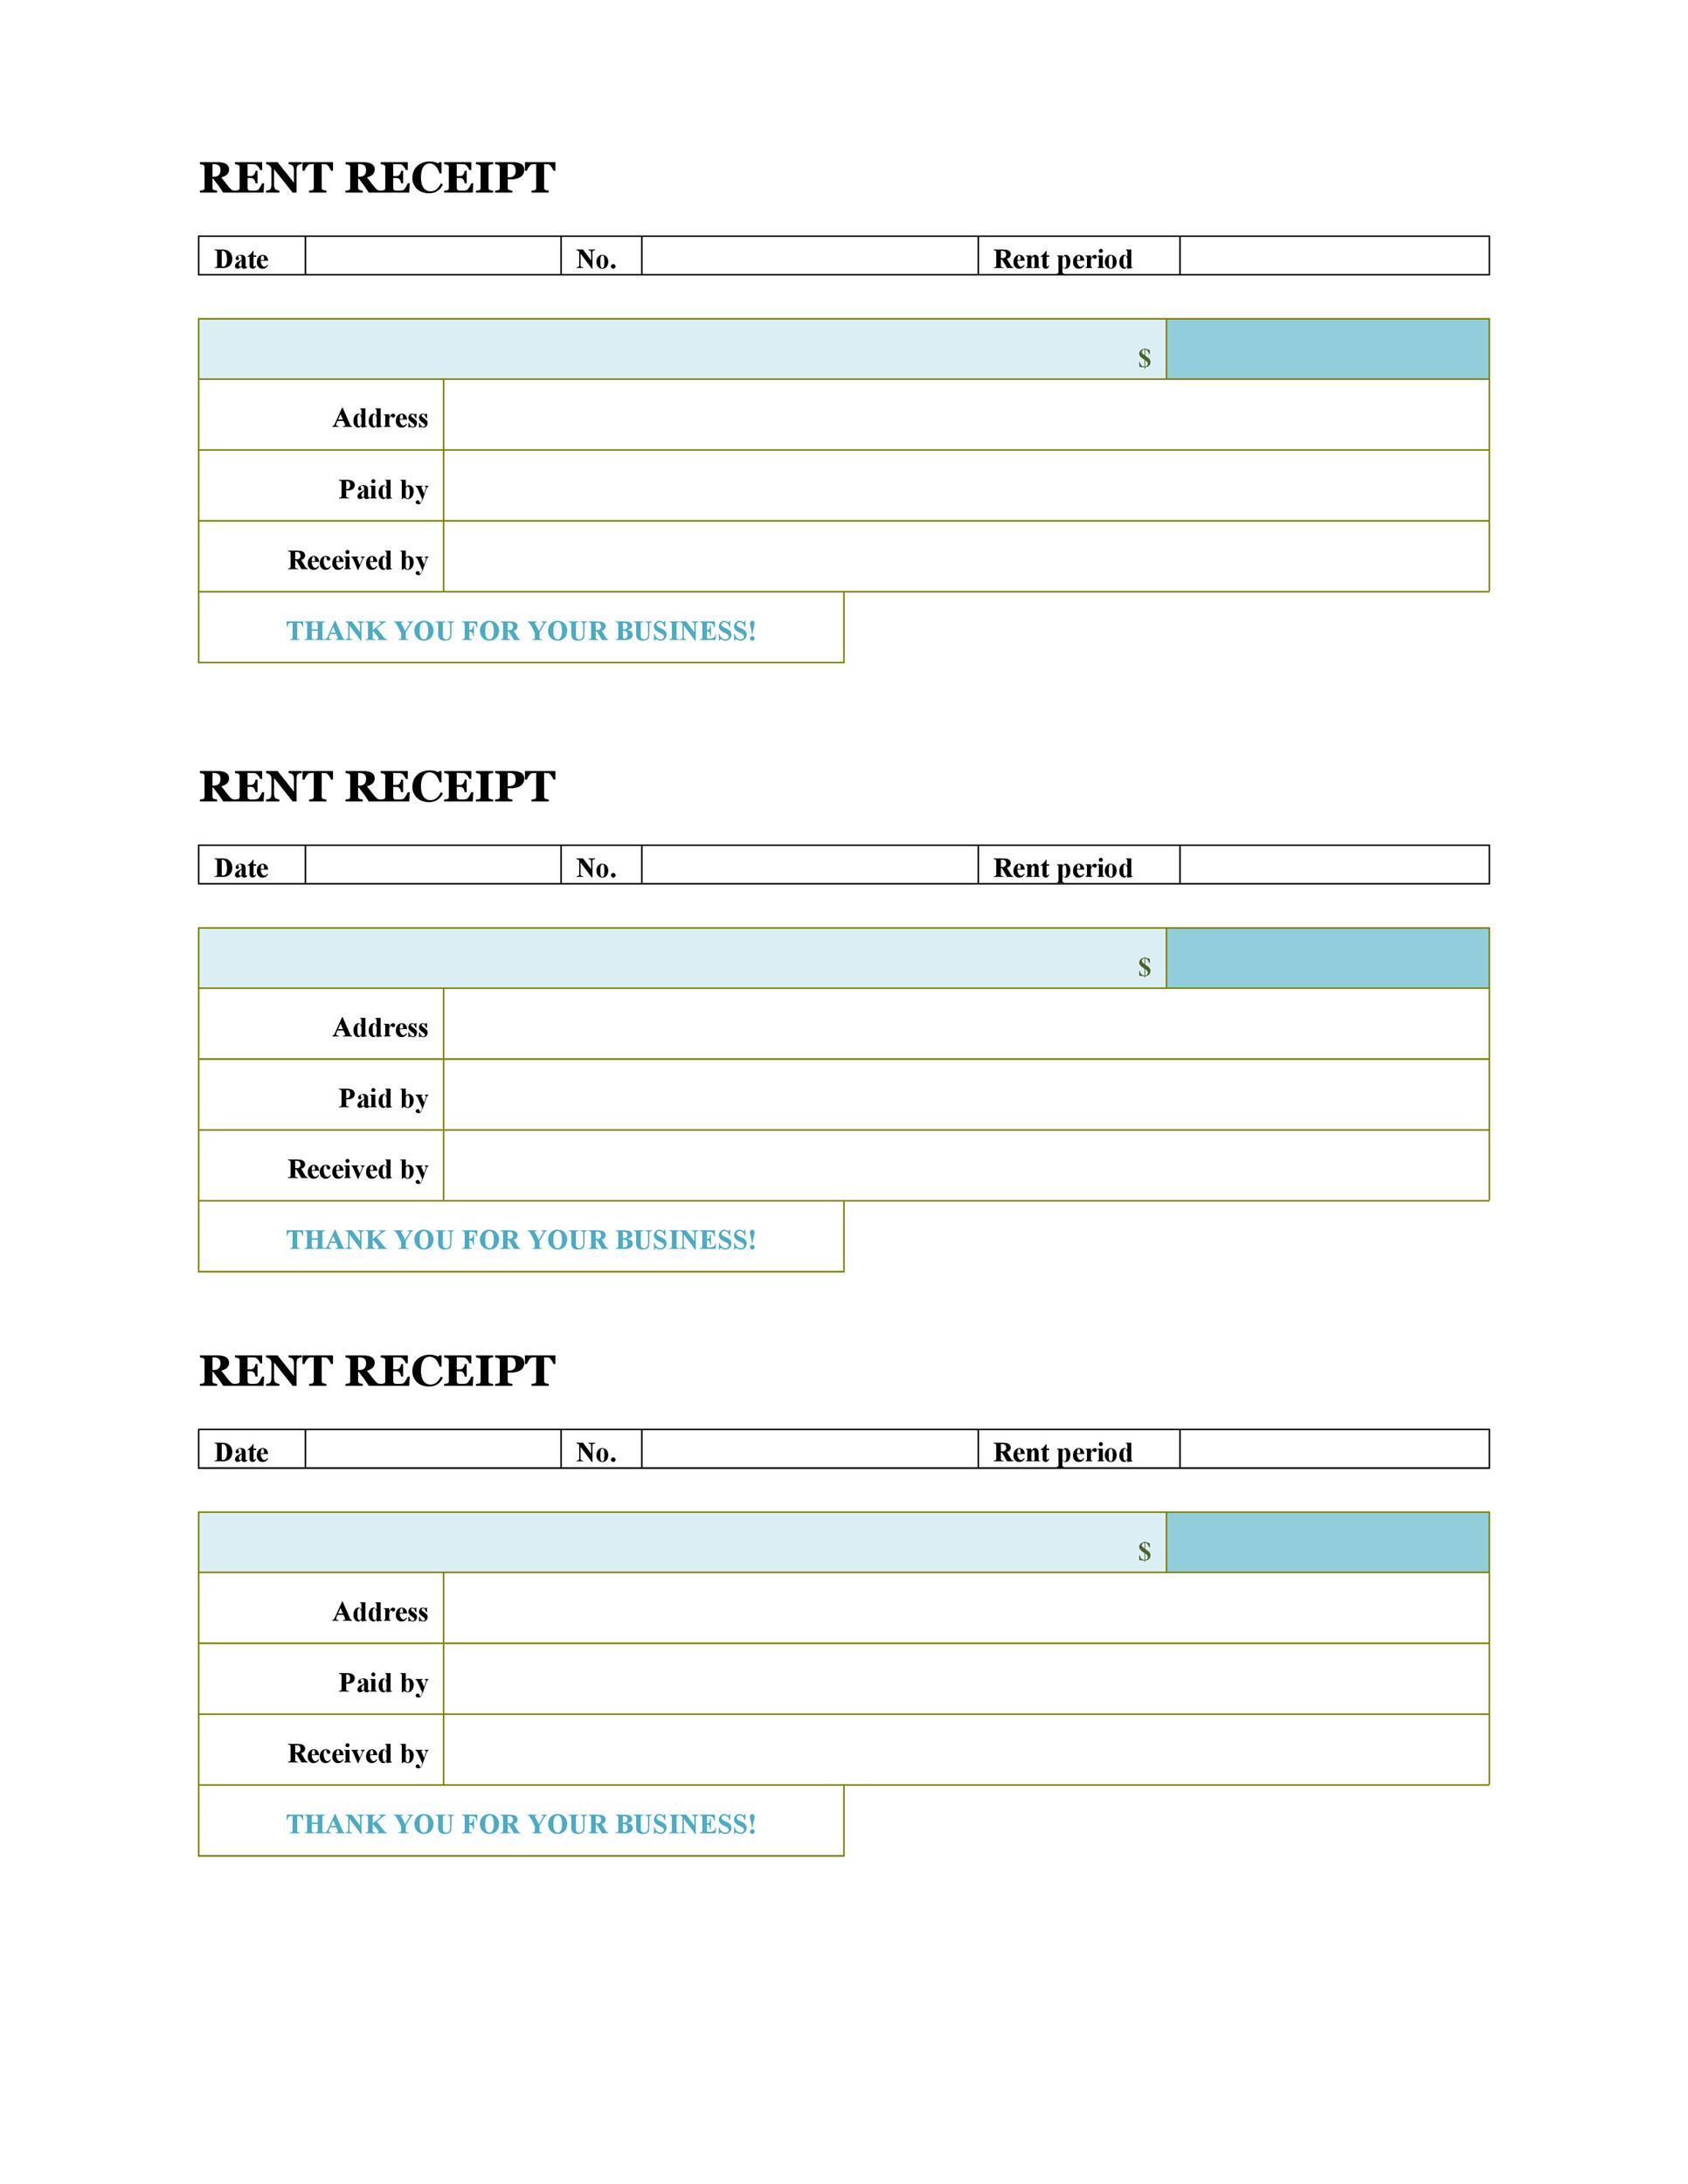 50 Free Receipt Templates Cash Sales Donation Taxi – Receipt Format Word